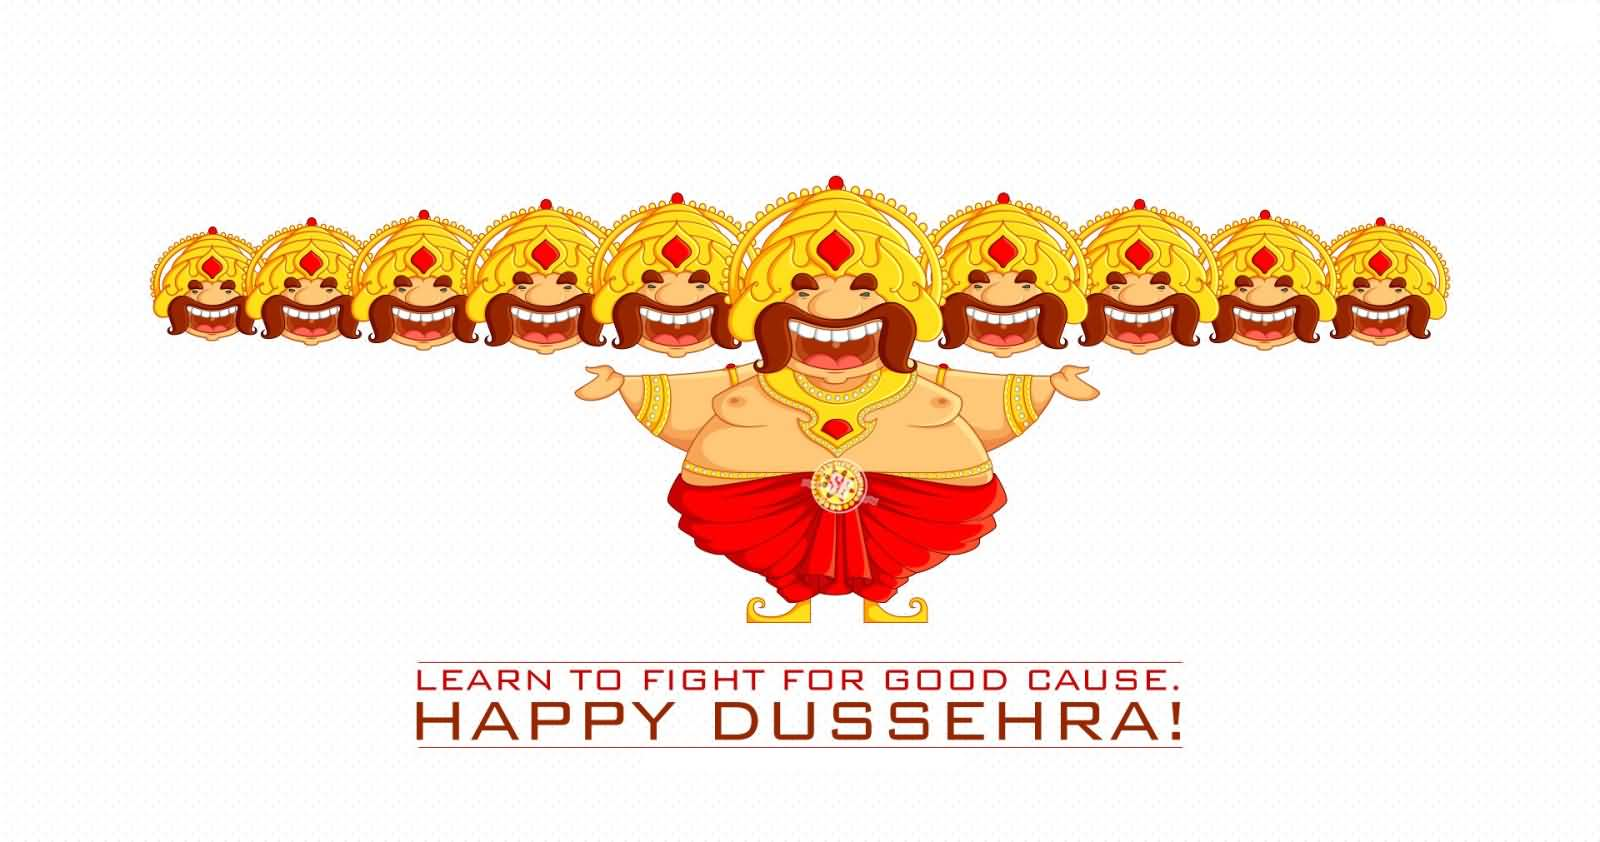 52 Amazing Dussehra Greeting Pictures And Images On Askideas